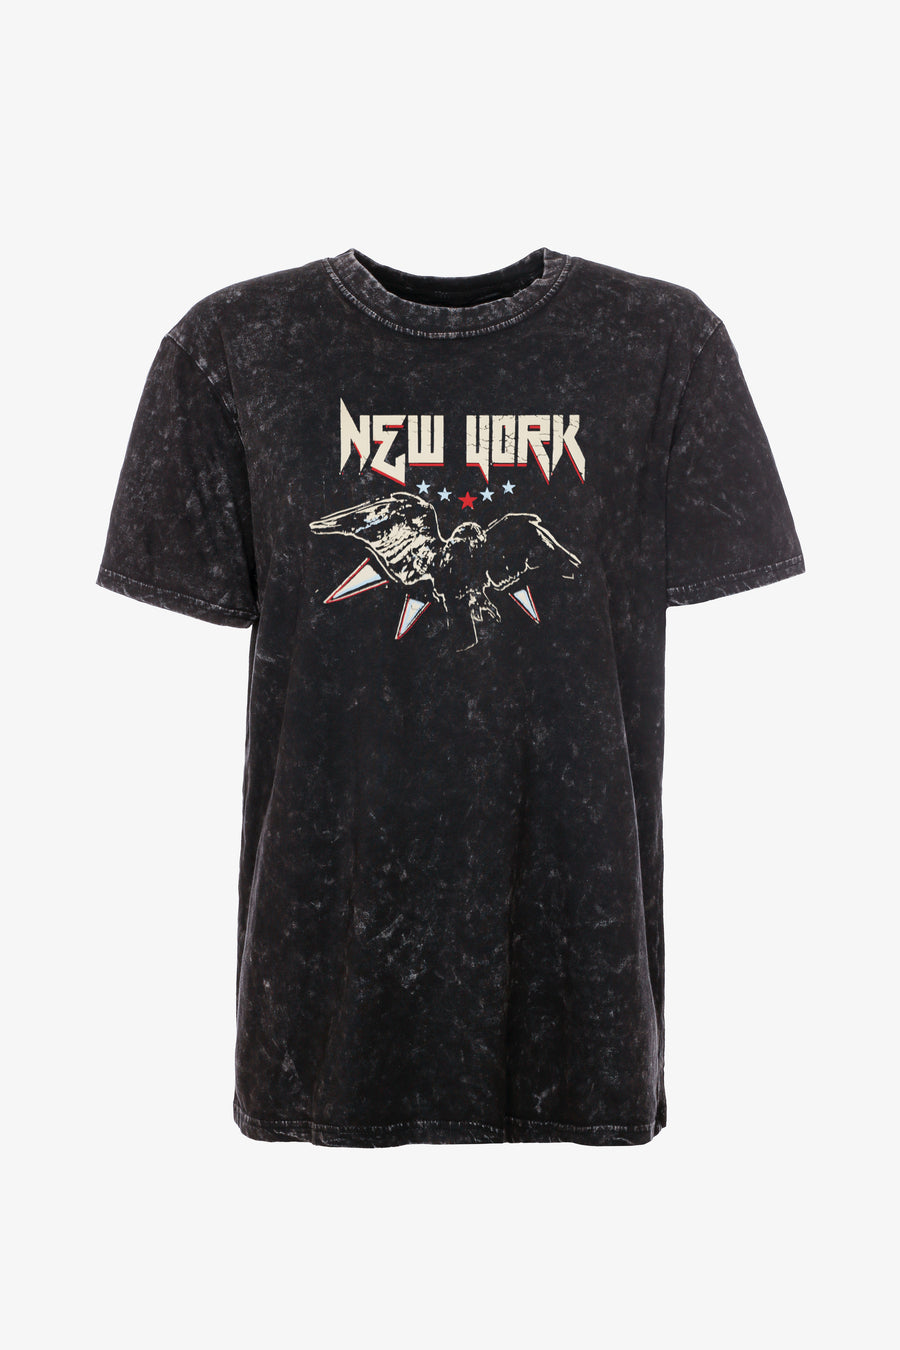 Gossengold - New York Vintage T Shirt Women - Black